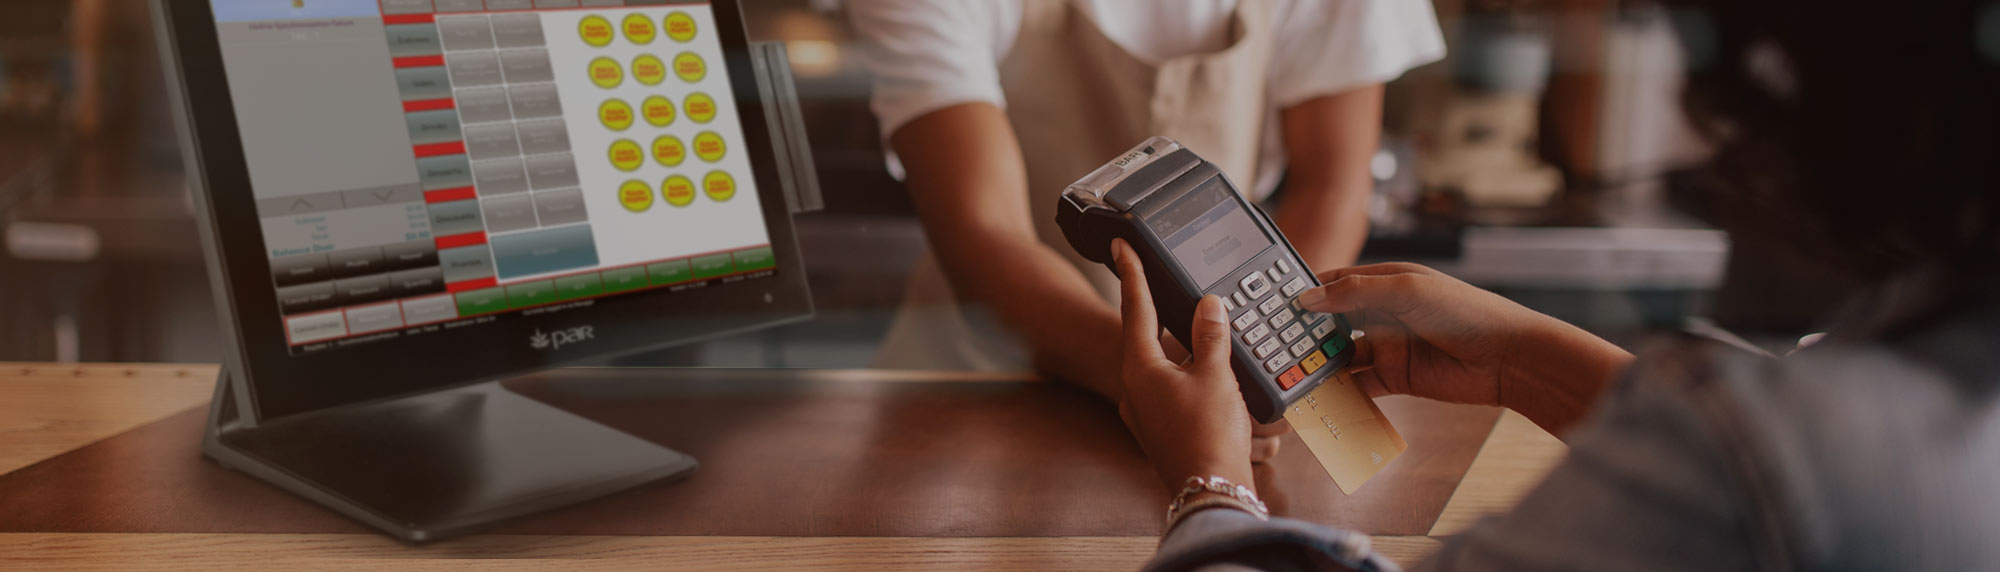 Point of Sale systems redefine online payment and safety